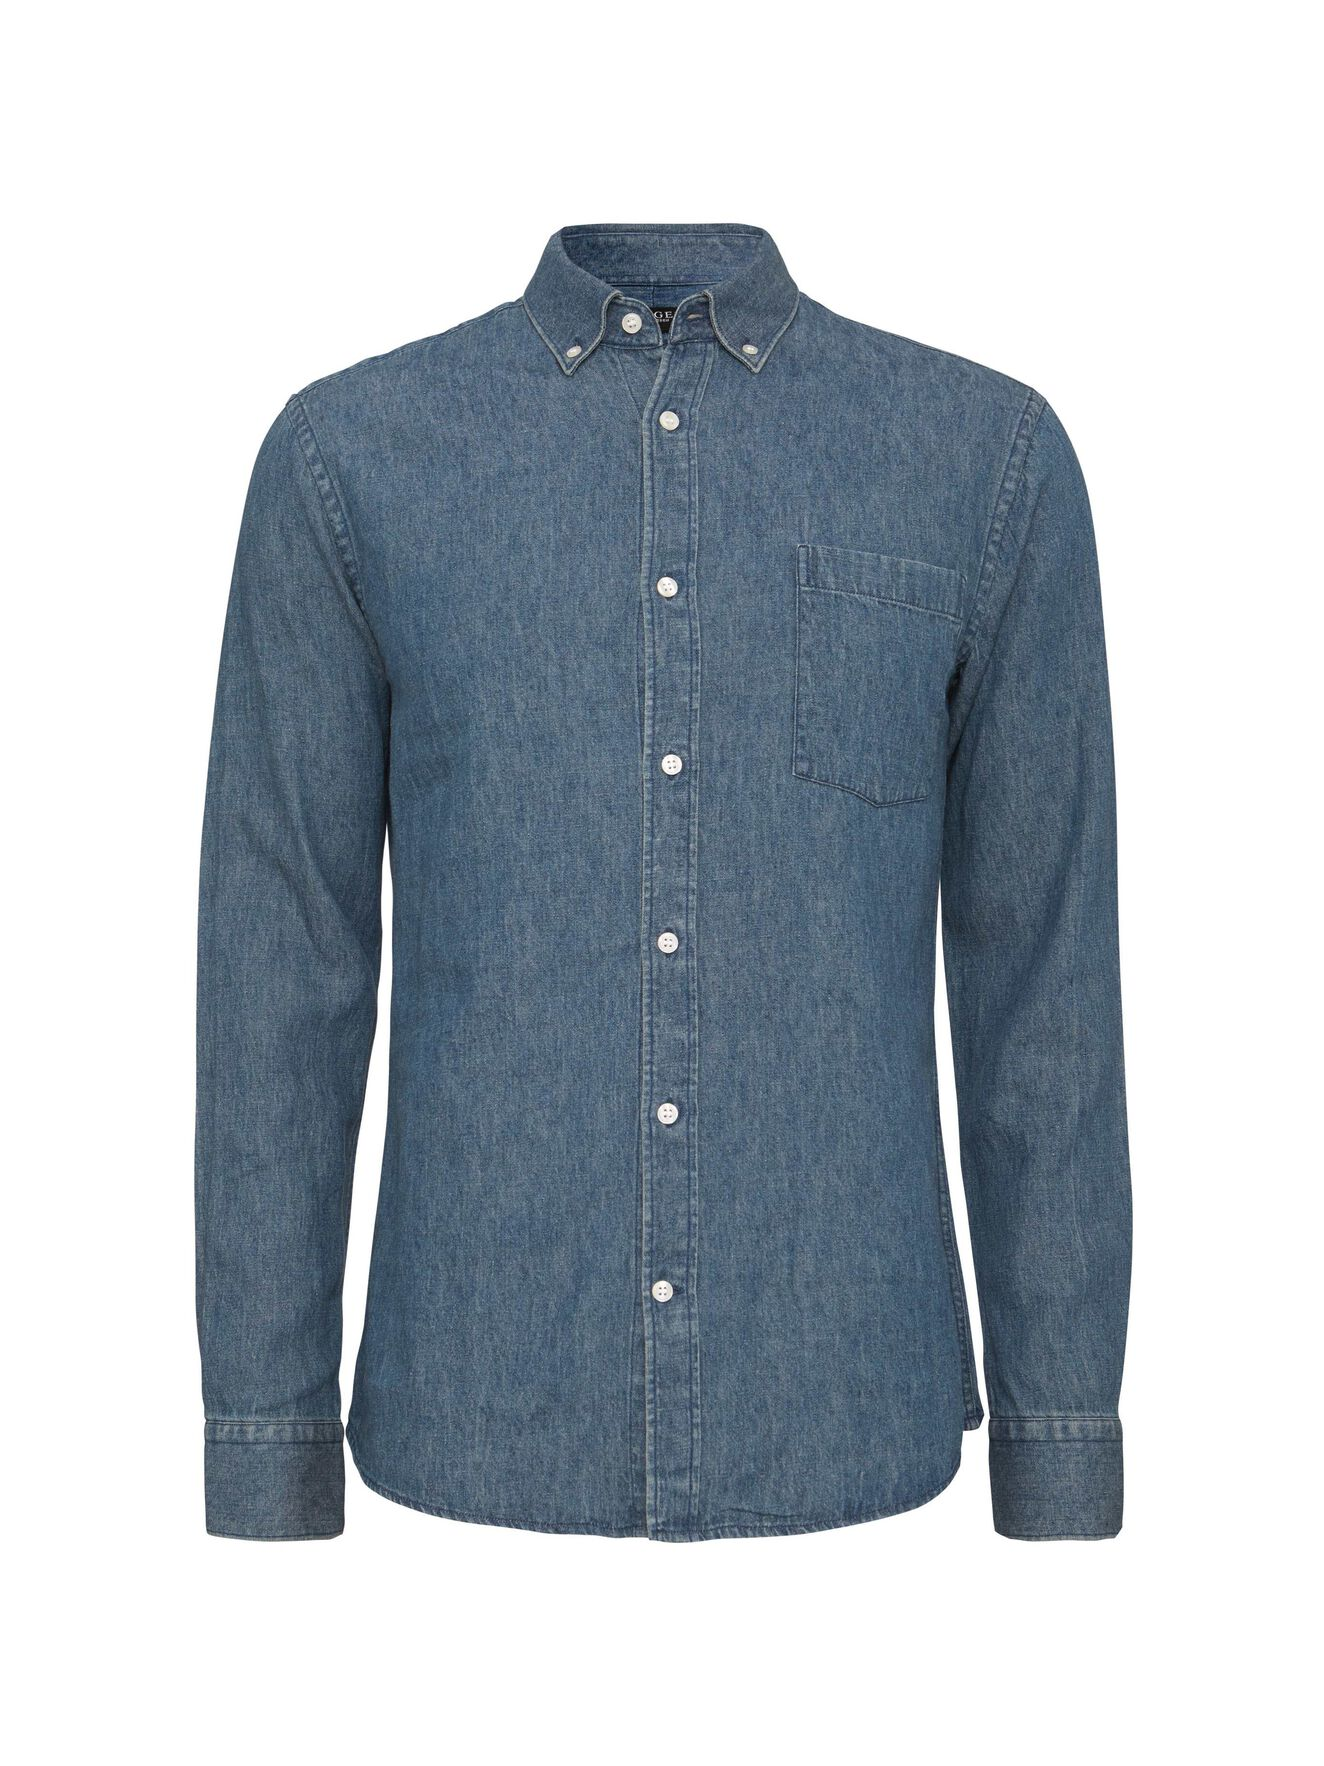 Donald 4 Shirt in Soft Blue Melange from Tiger of Sweden